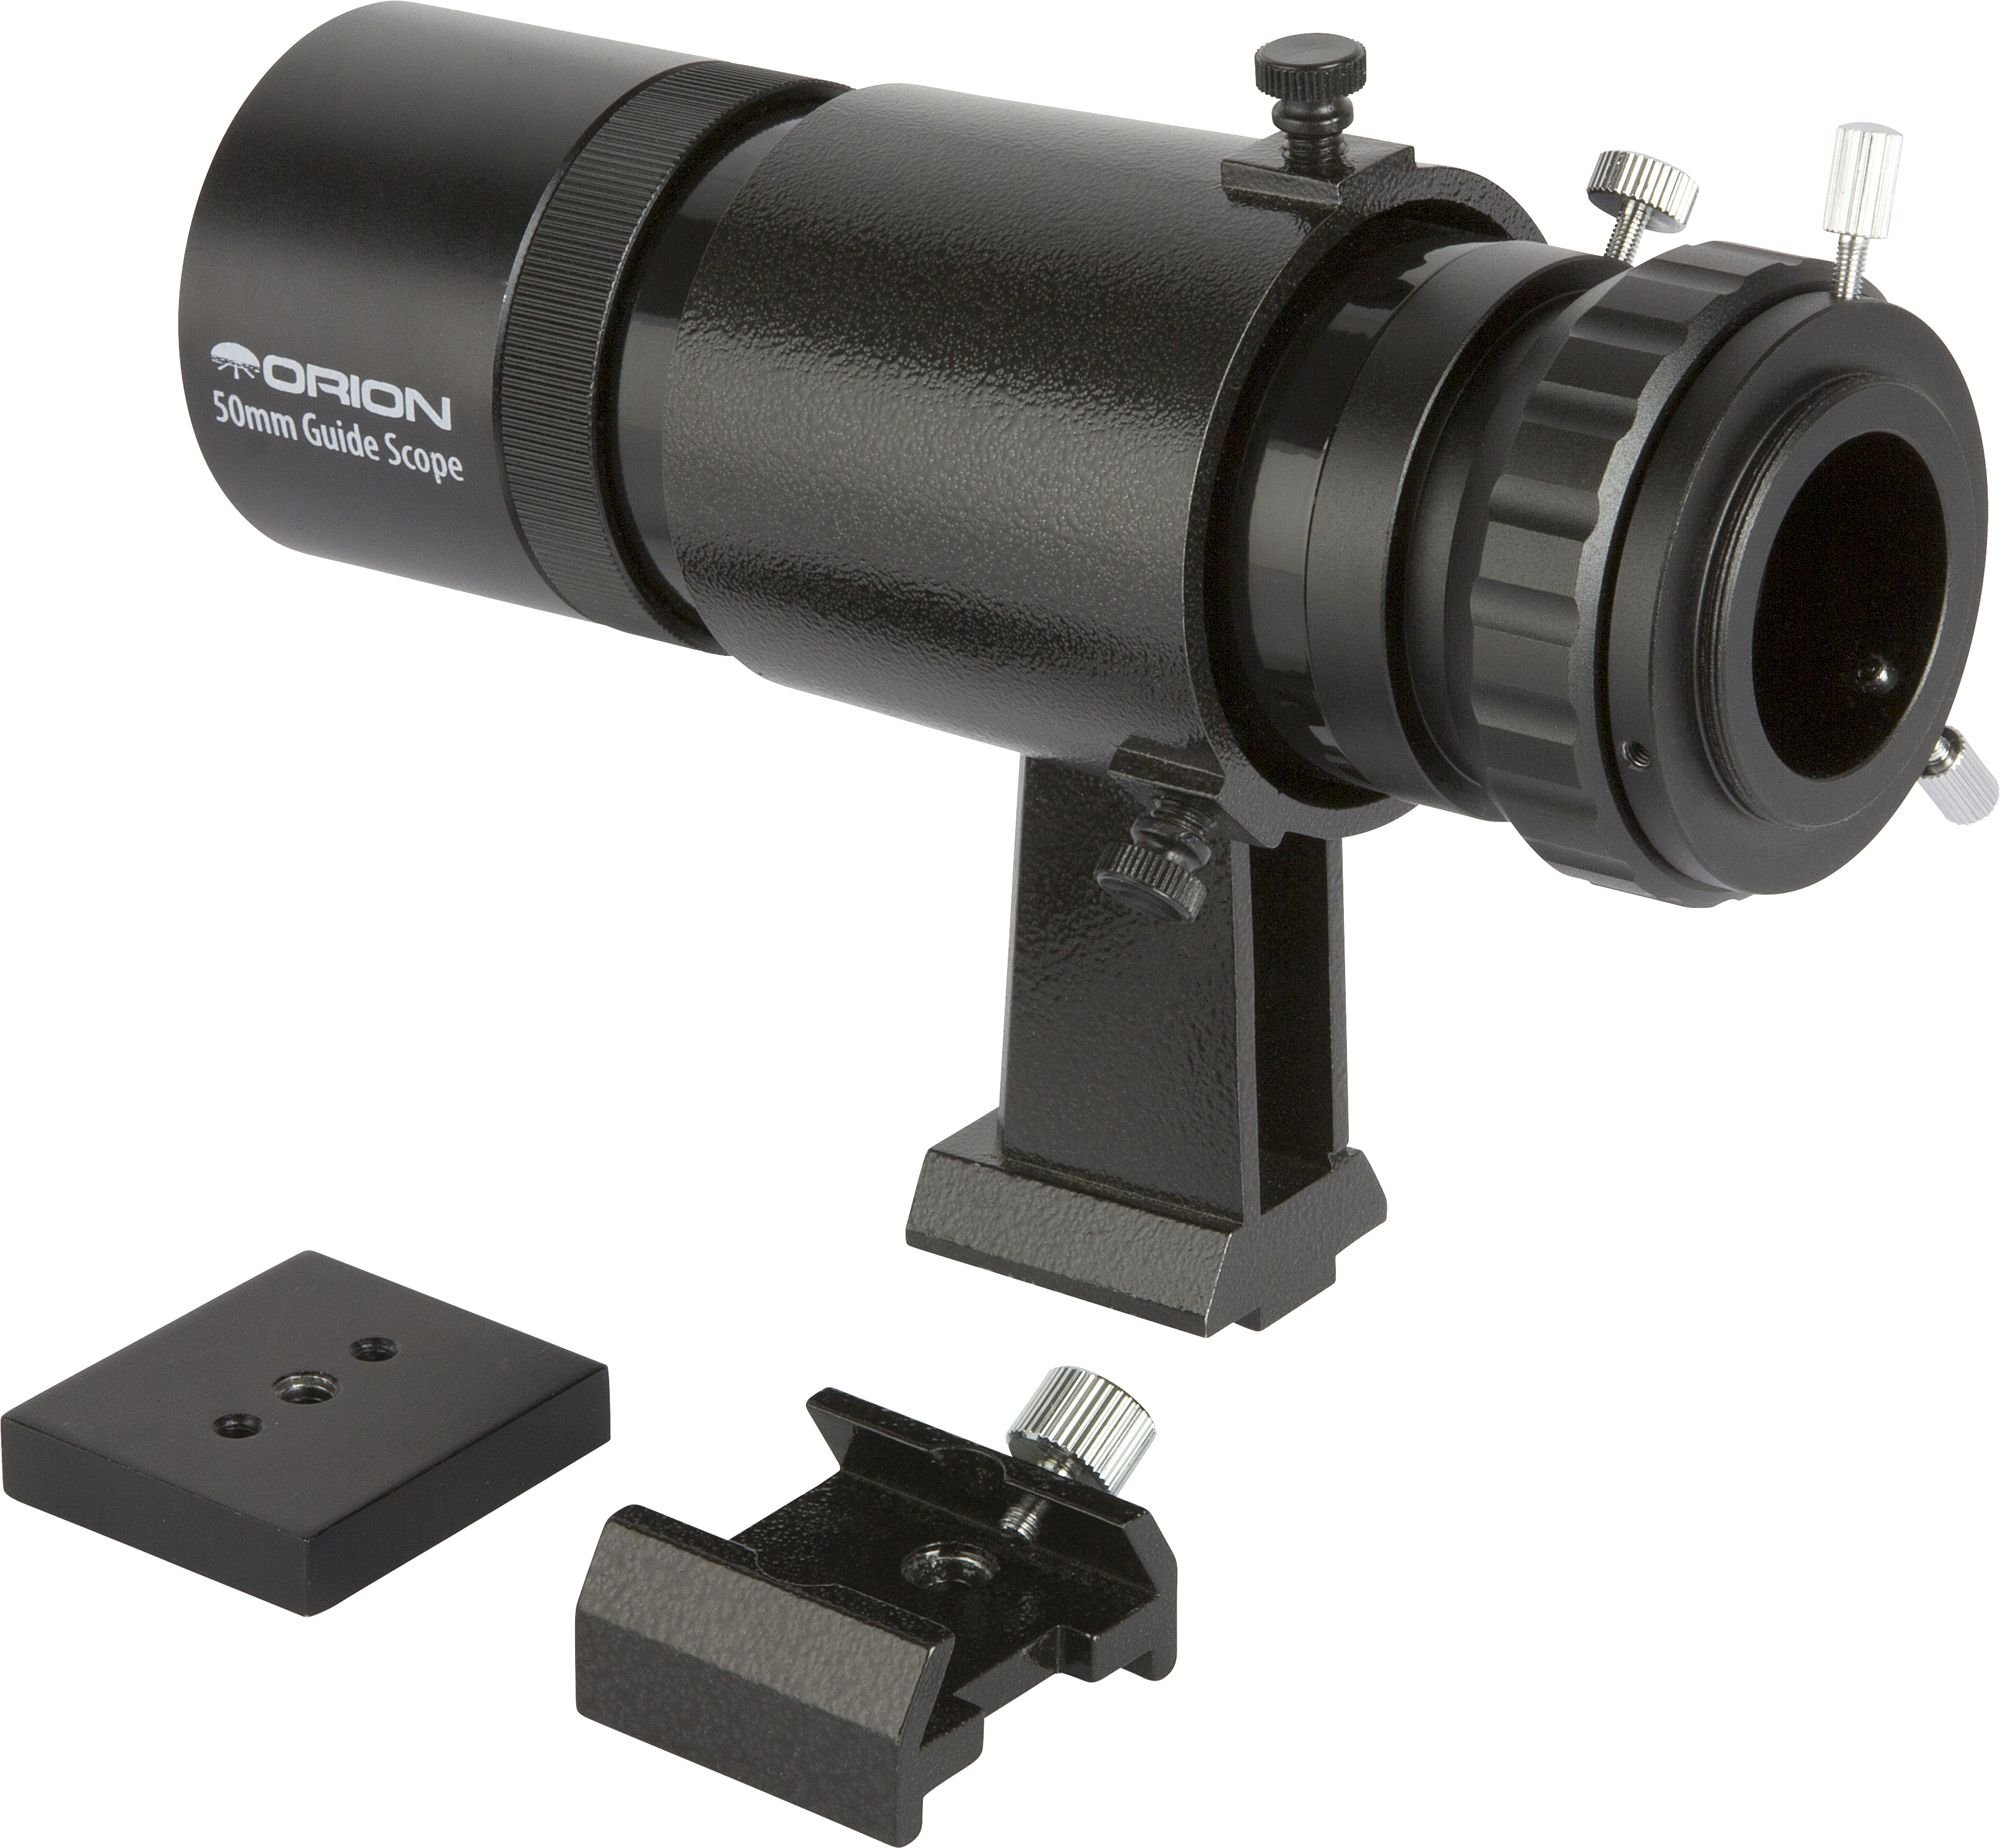 Orion 13022 Deluxe Mini 50mm Guide Scope with Helical Focuser by Orion